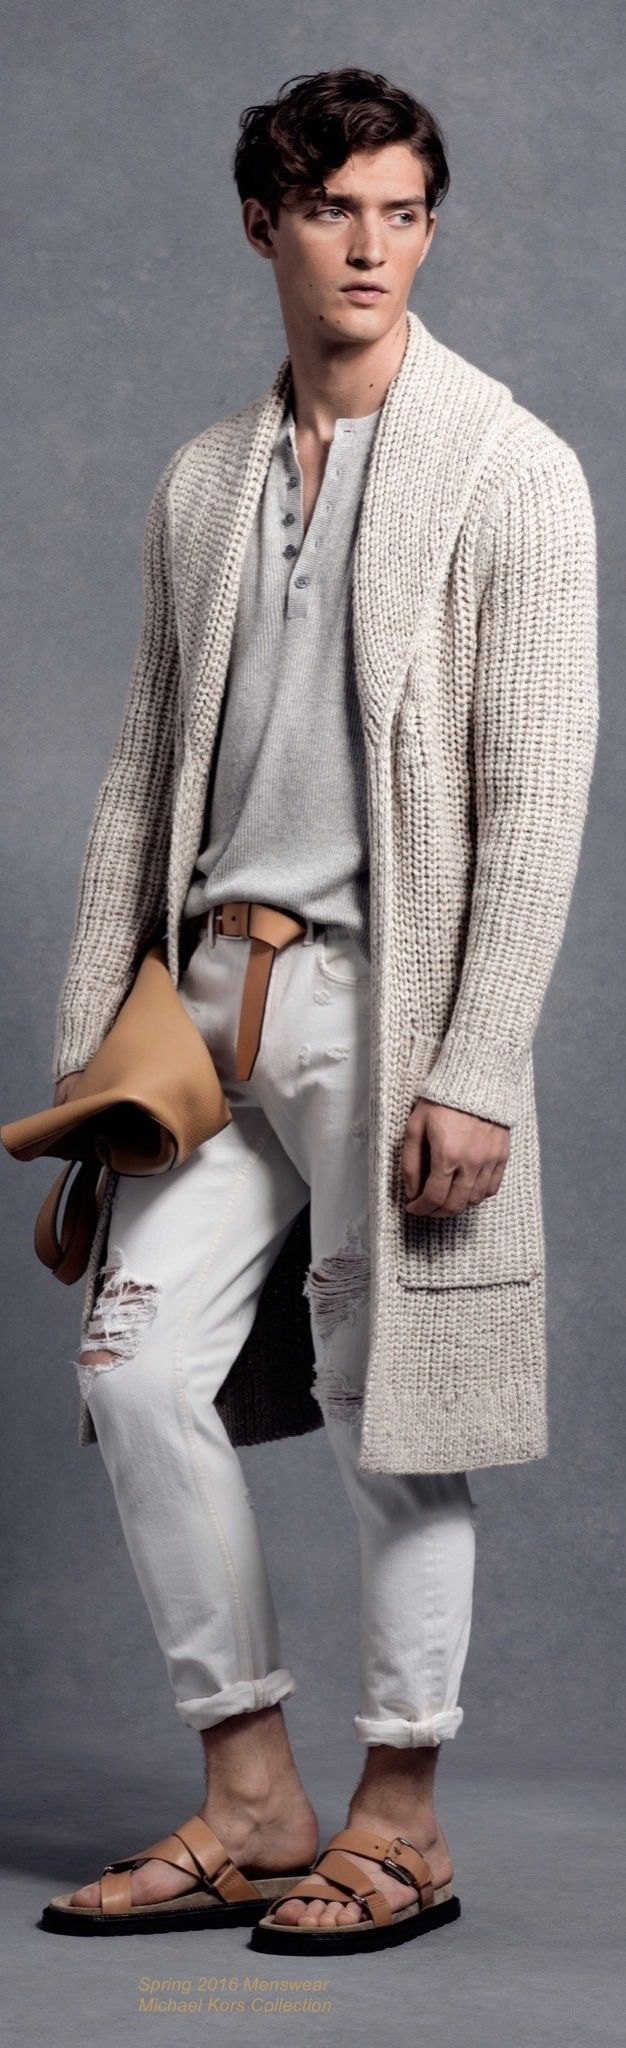 Spring 2016 Menswear Michael Kors Collection